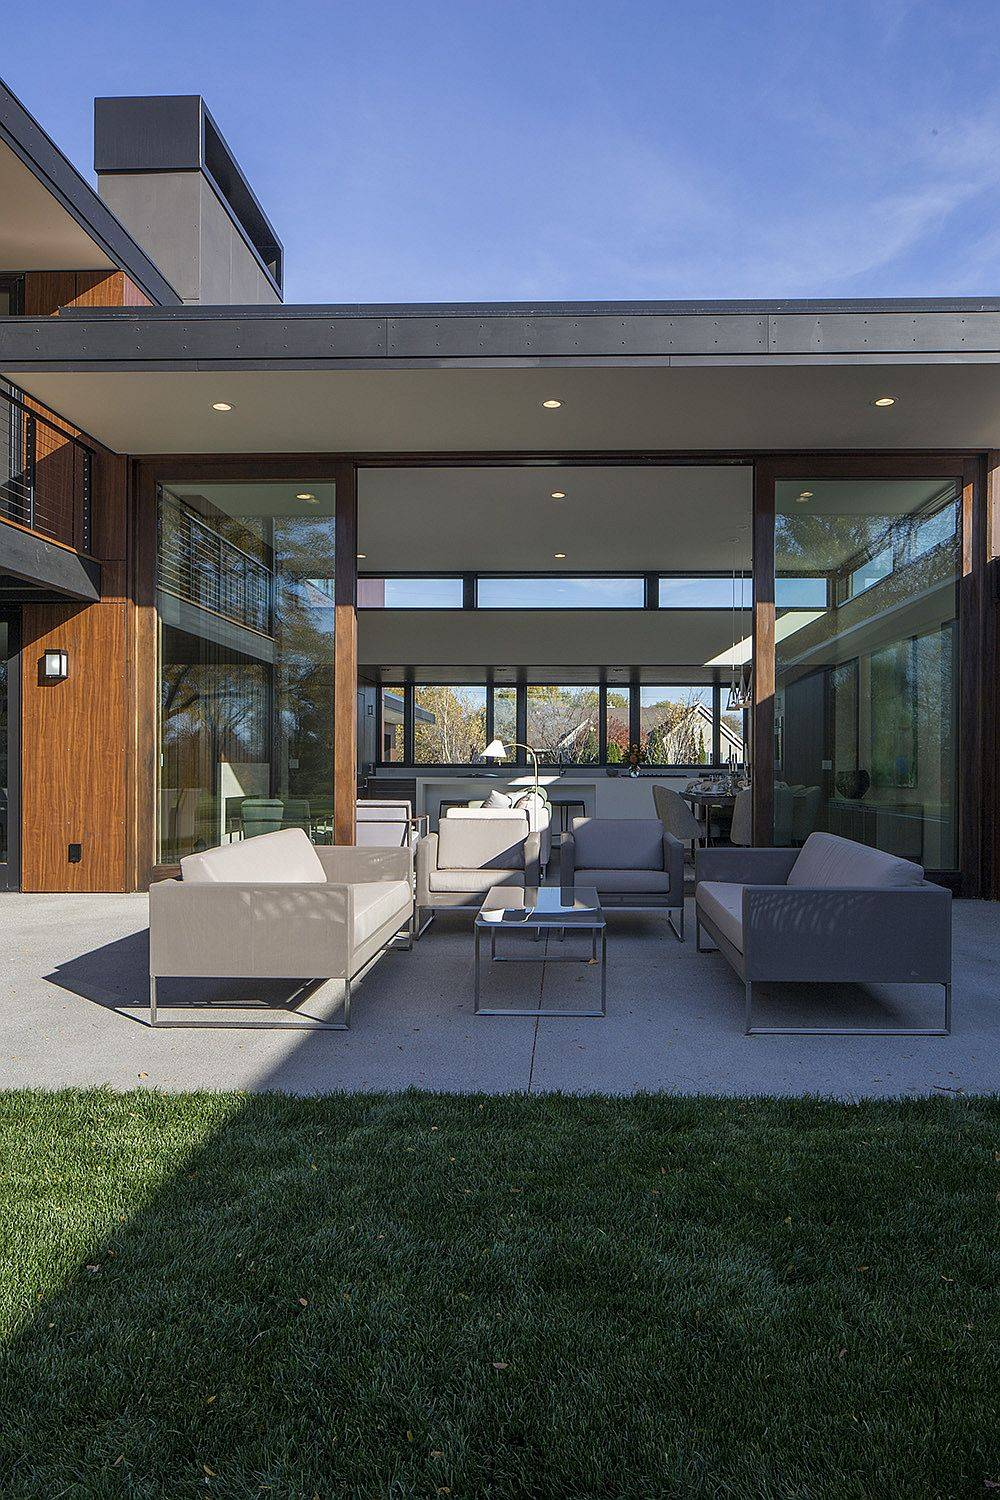 Central-sitting-area-and-outdoor-deck-of-the-home-feel-like-an-extension-of-the-interior-59717